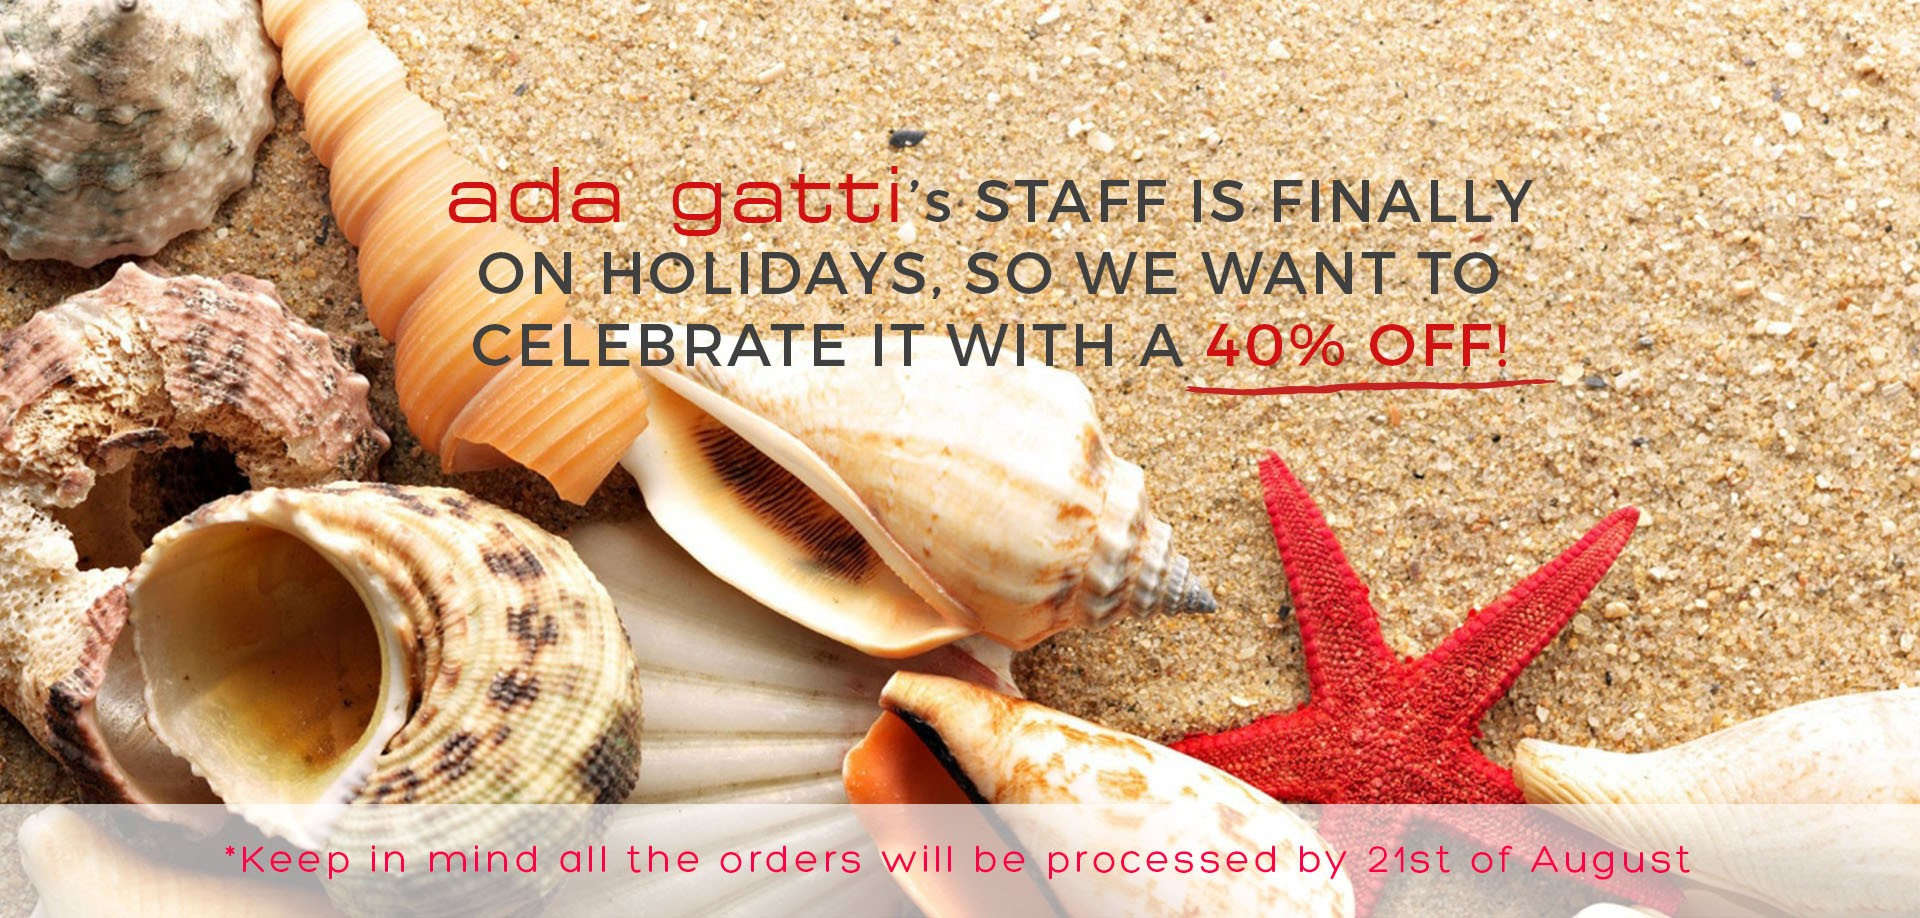 Save a 50% in your orders at Ada Gatti!